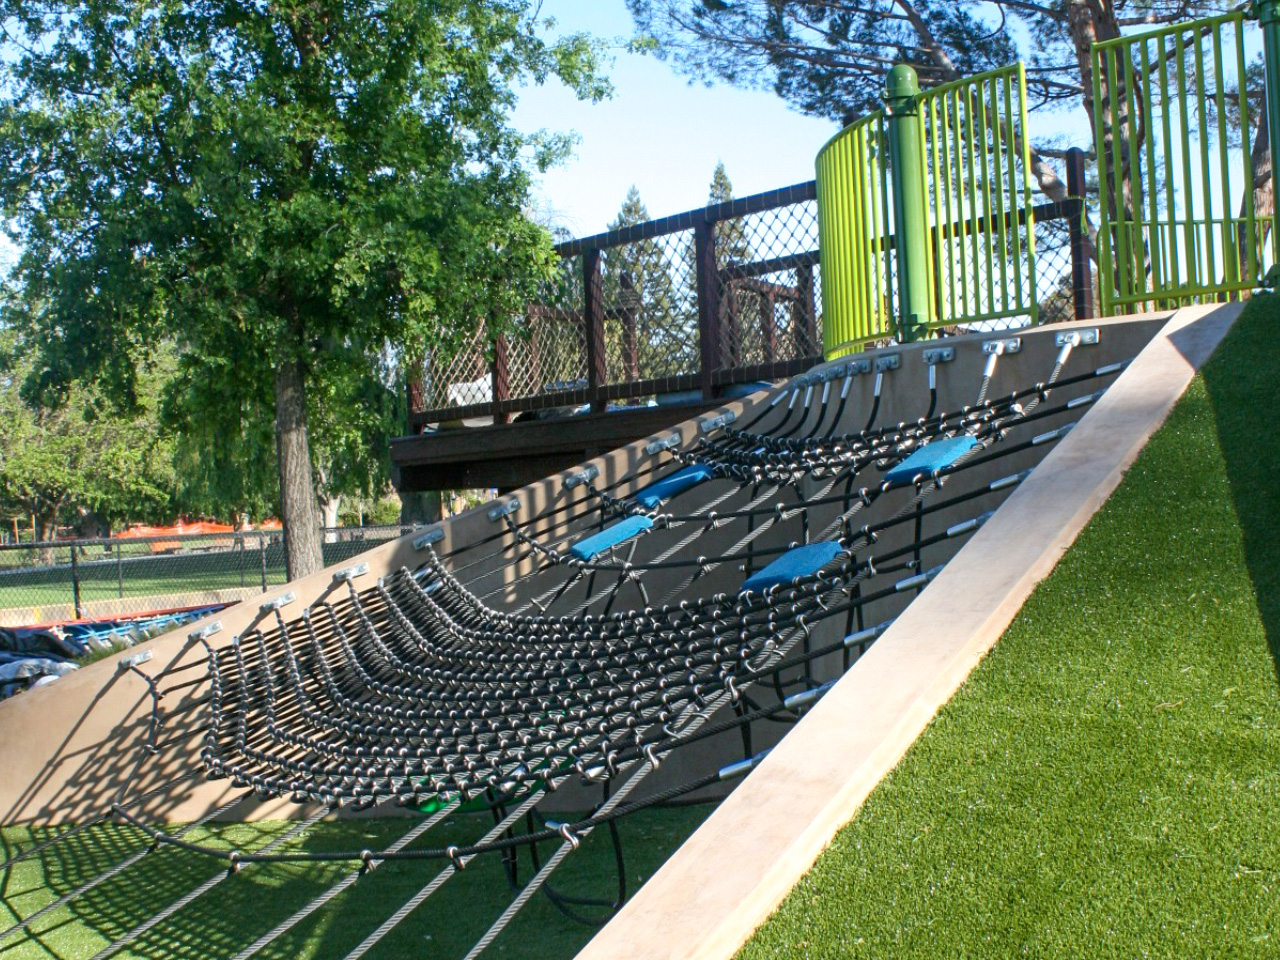 Playground Equipment Installers from Community Playgrounds installed Magical Bridge Rope Climb